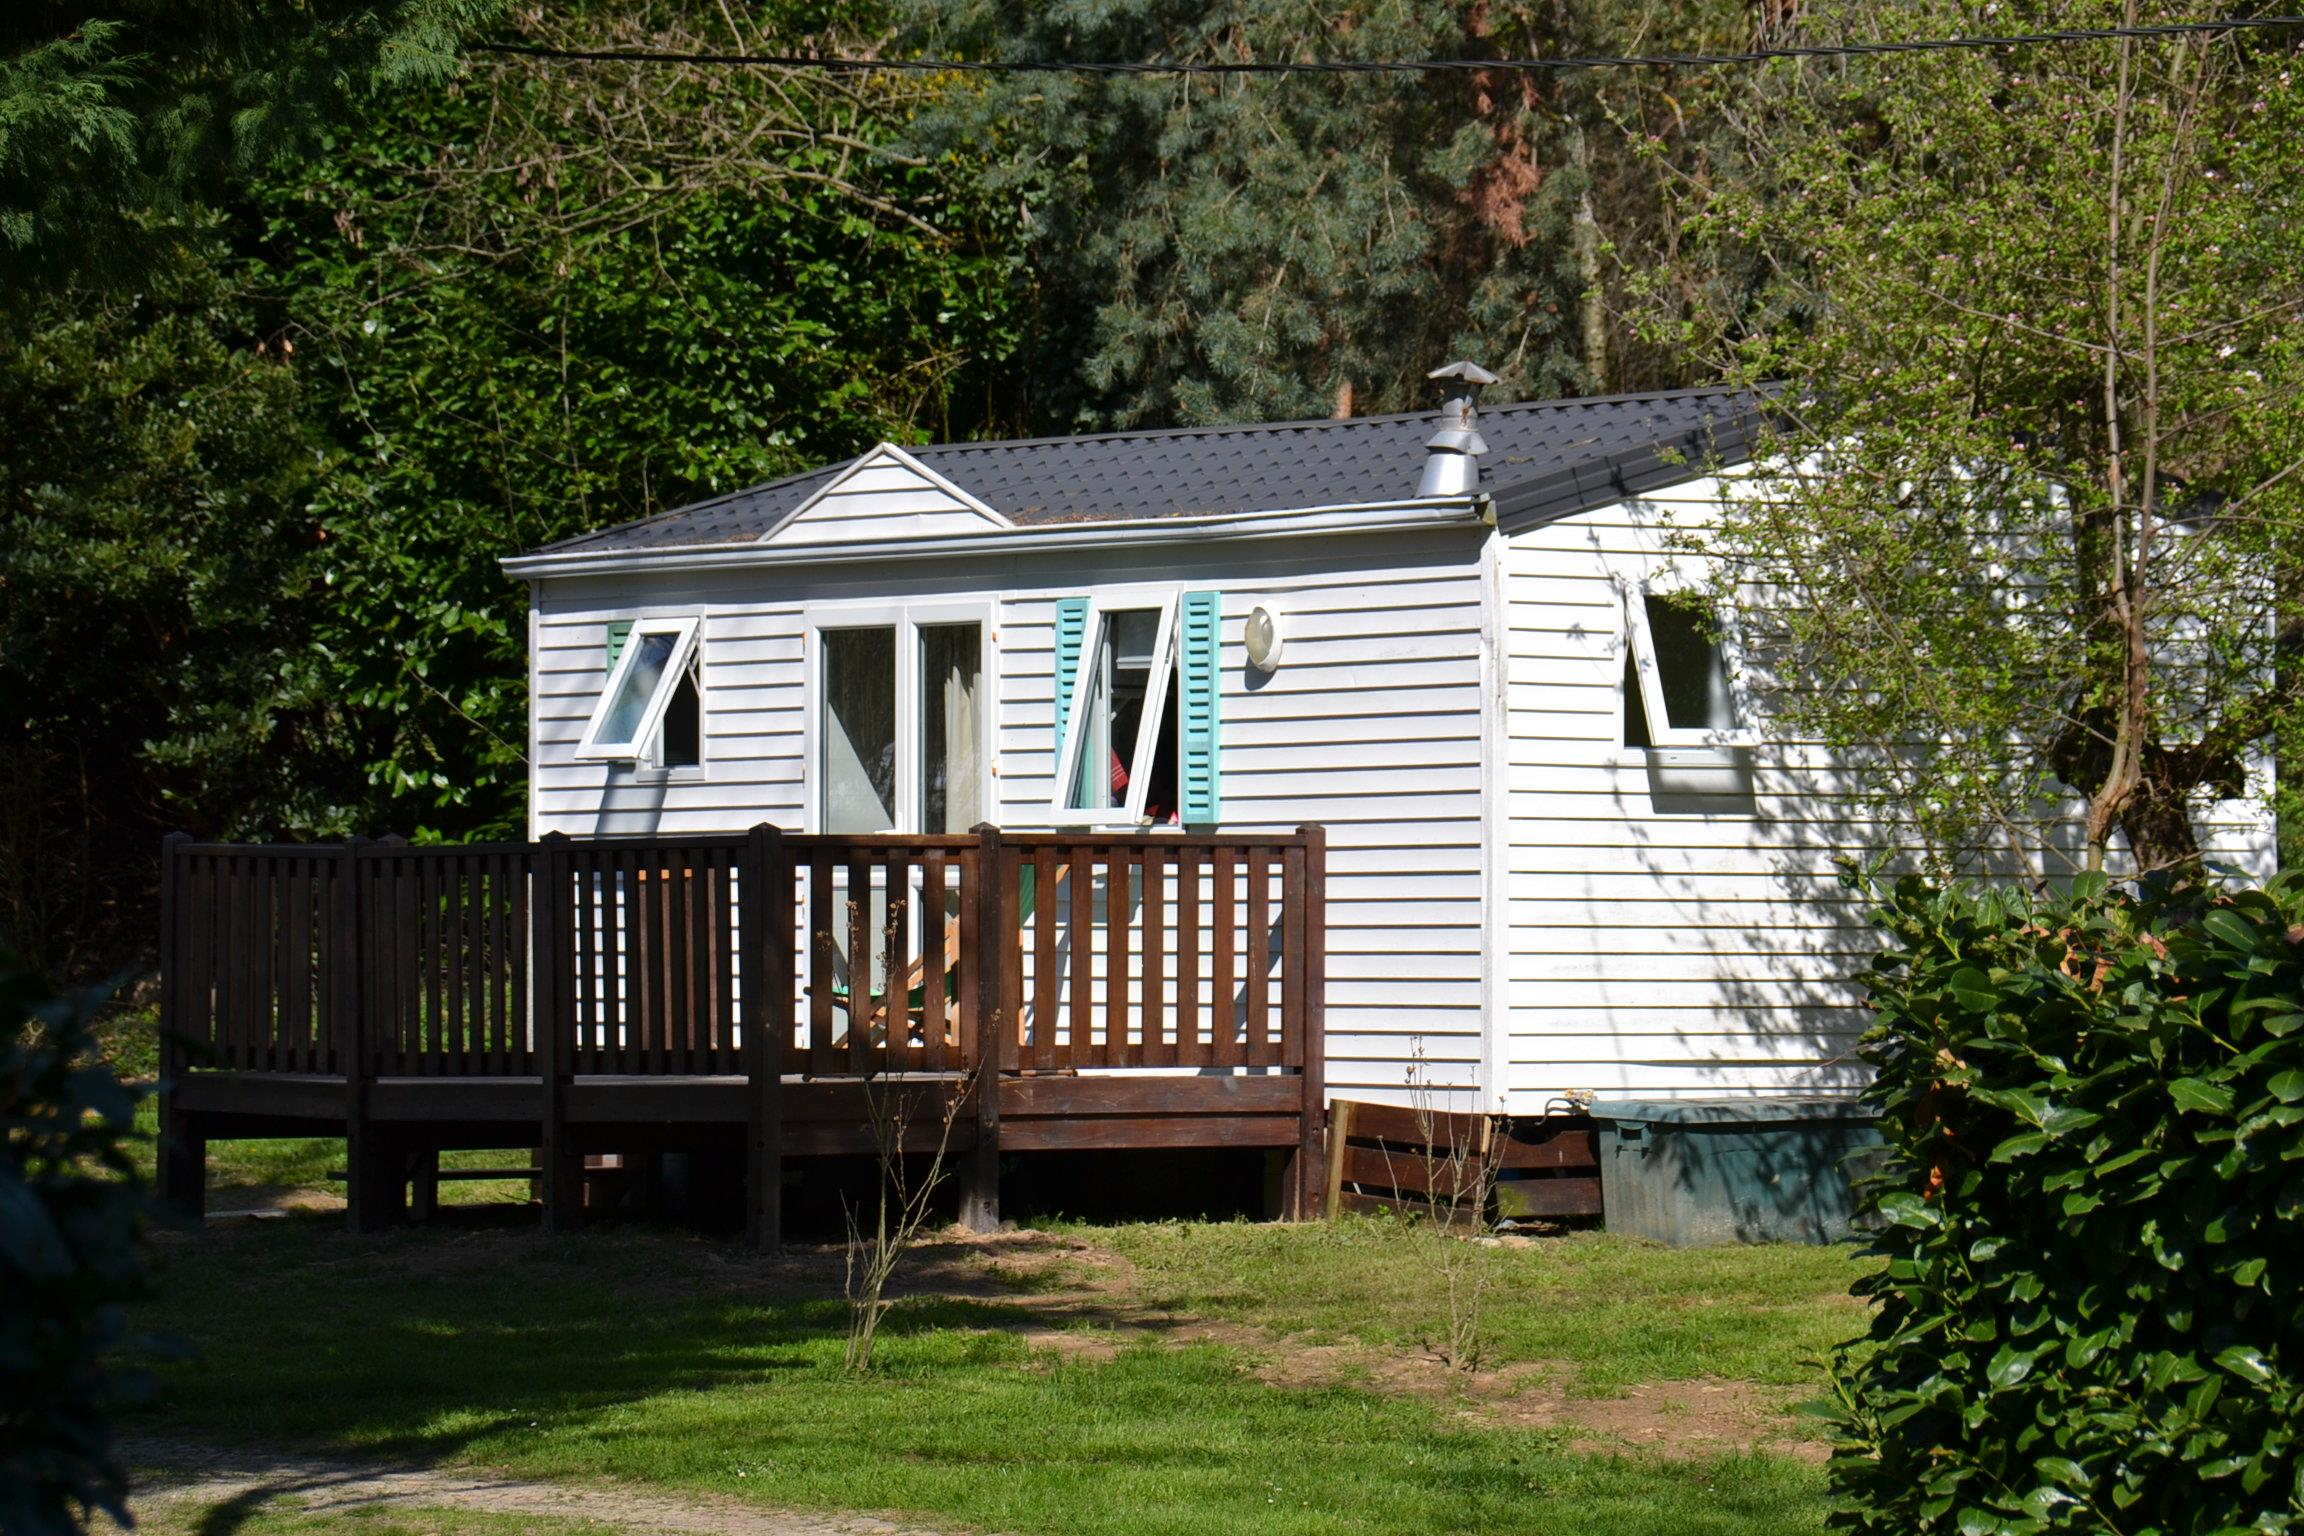 Huuraccommodatie - Cottage O'hara - Camping le Viaduc